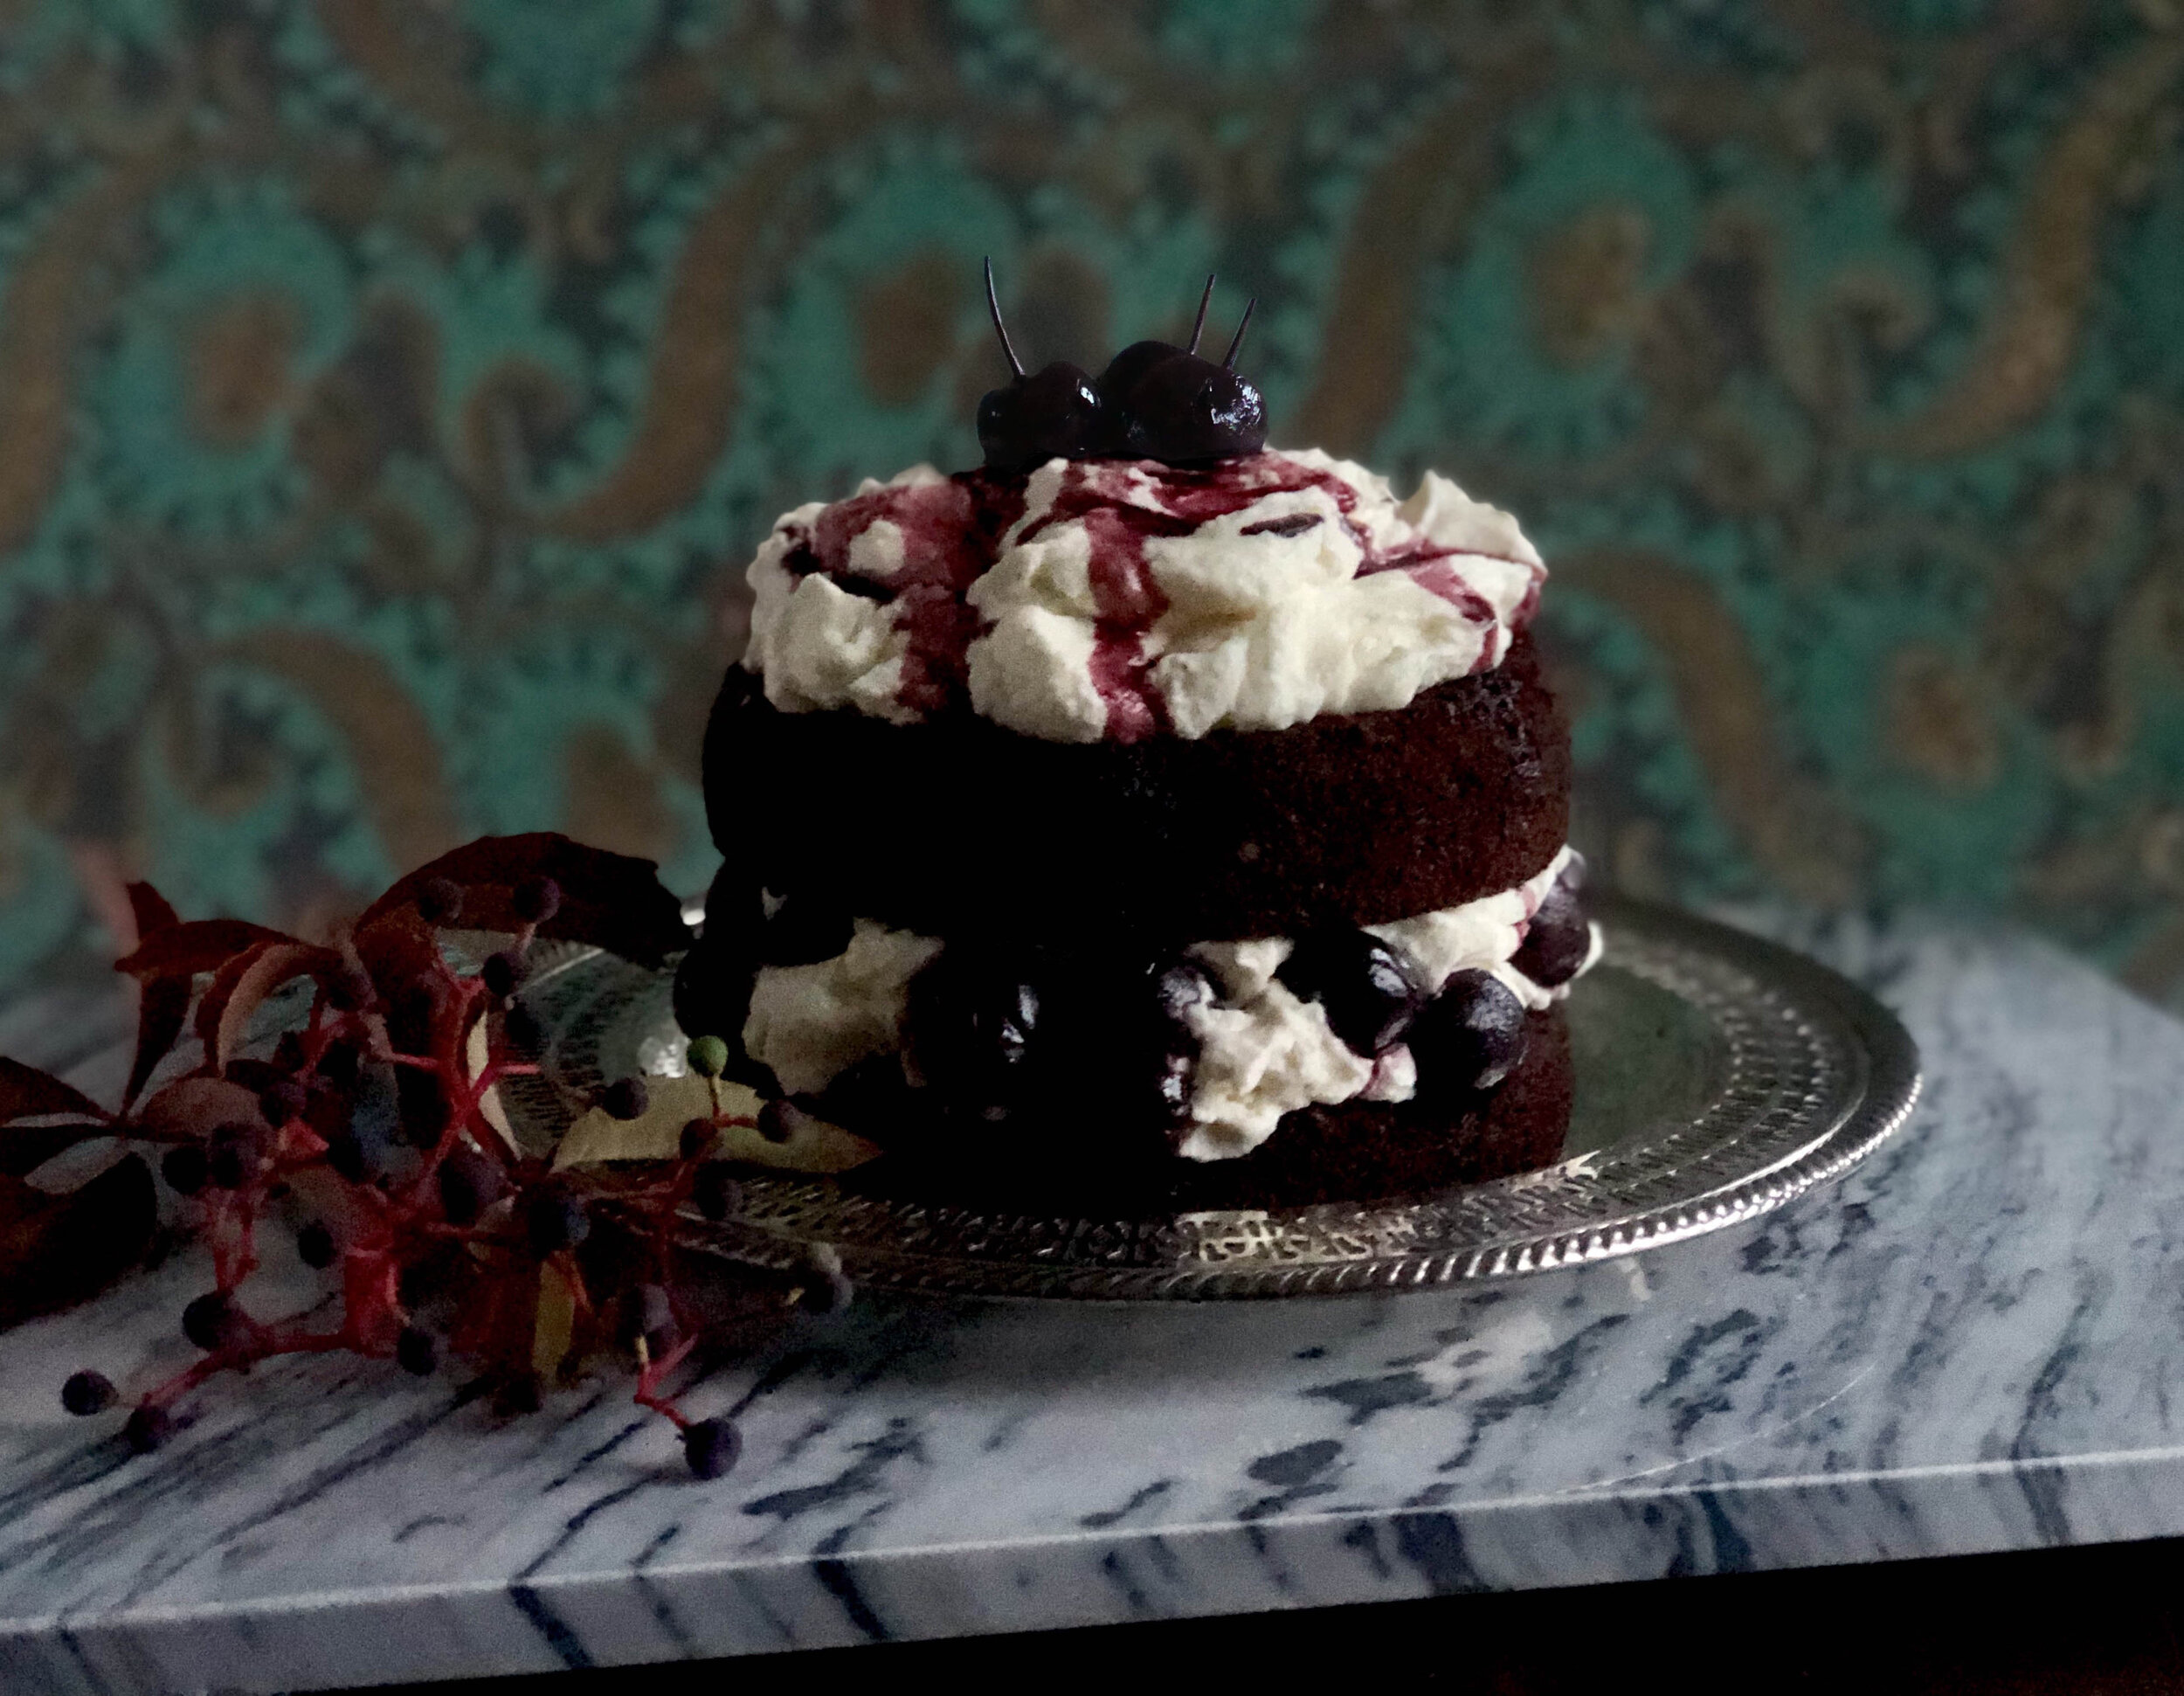 Orasella_chocolate_cake_with_marscapone_cream